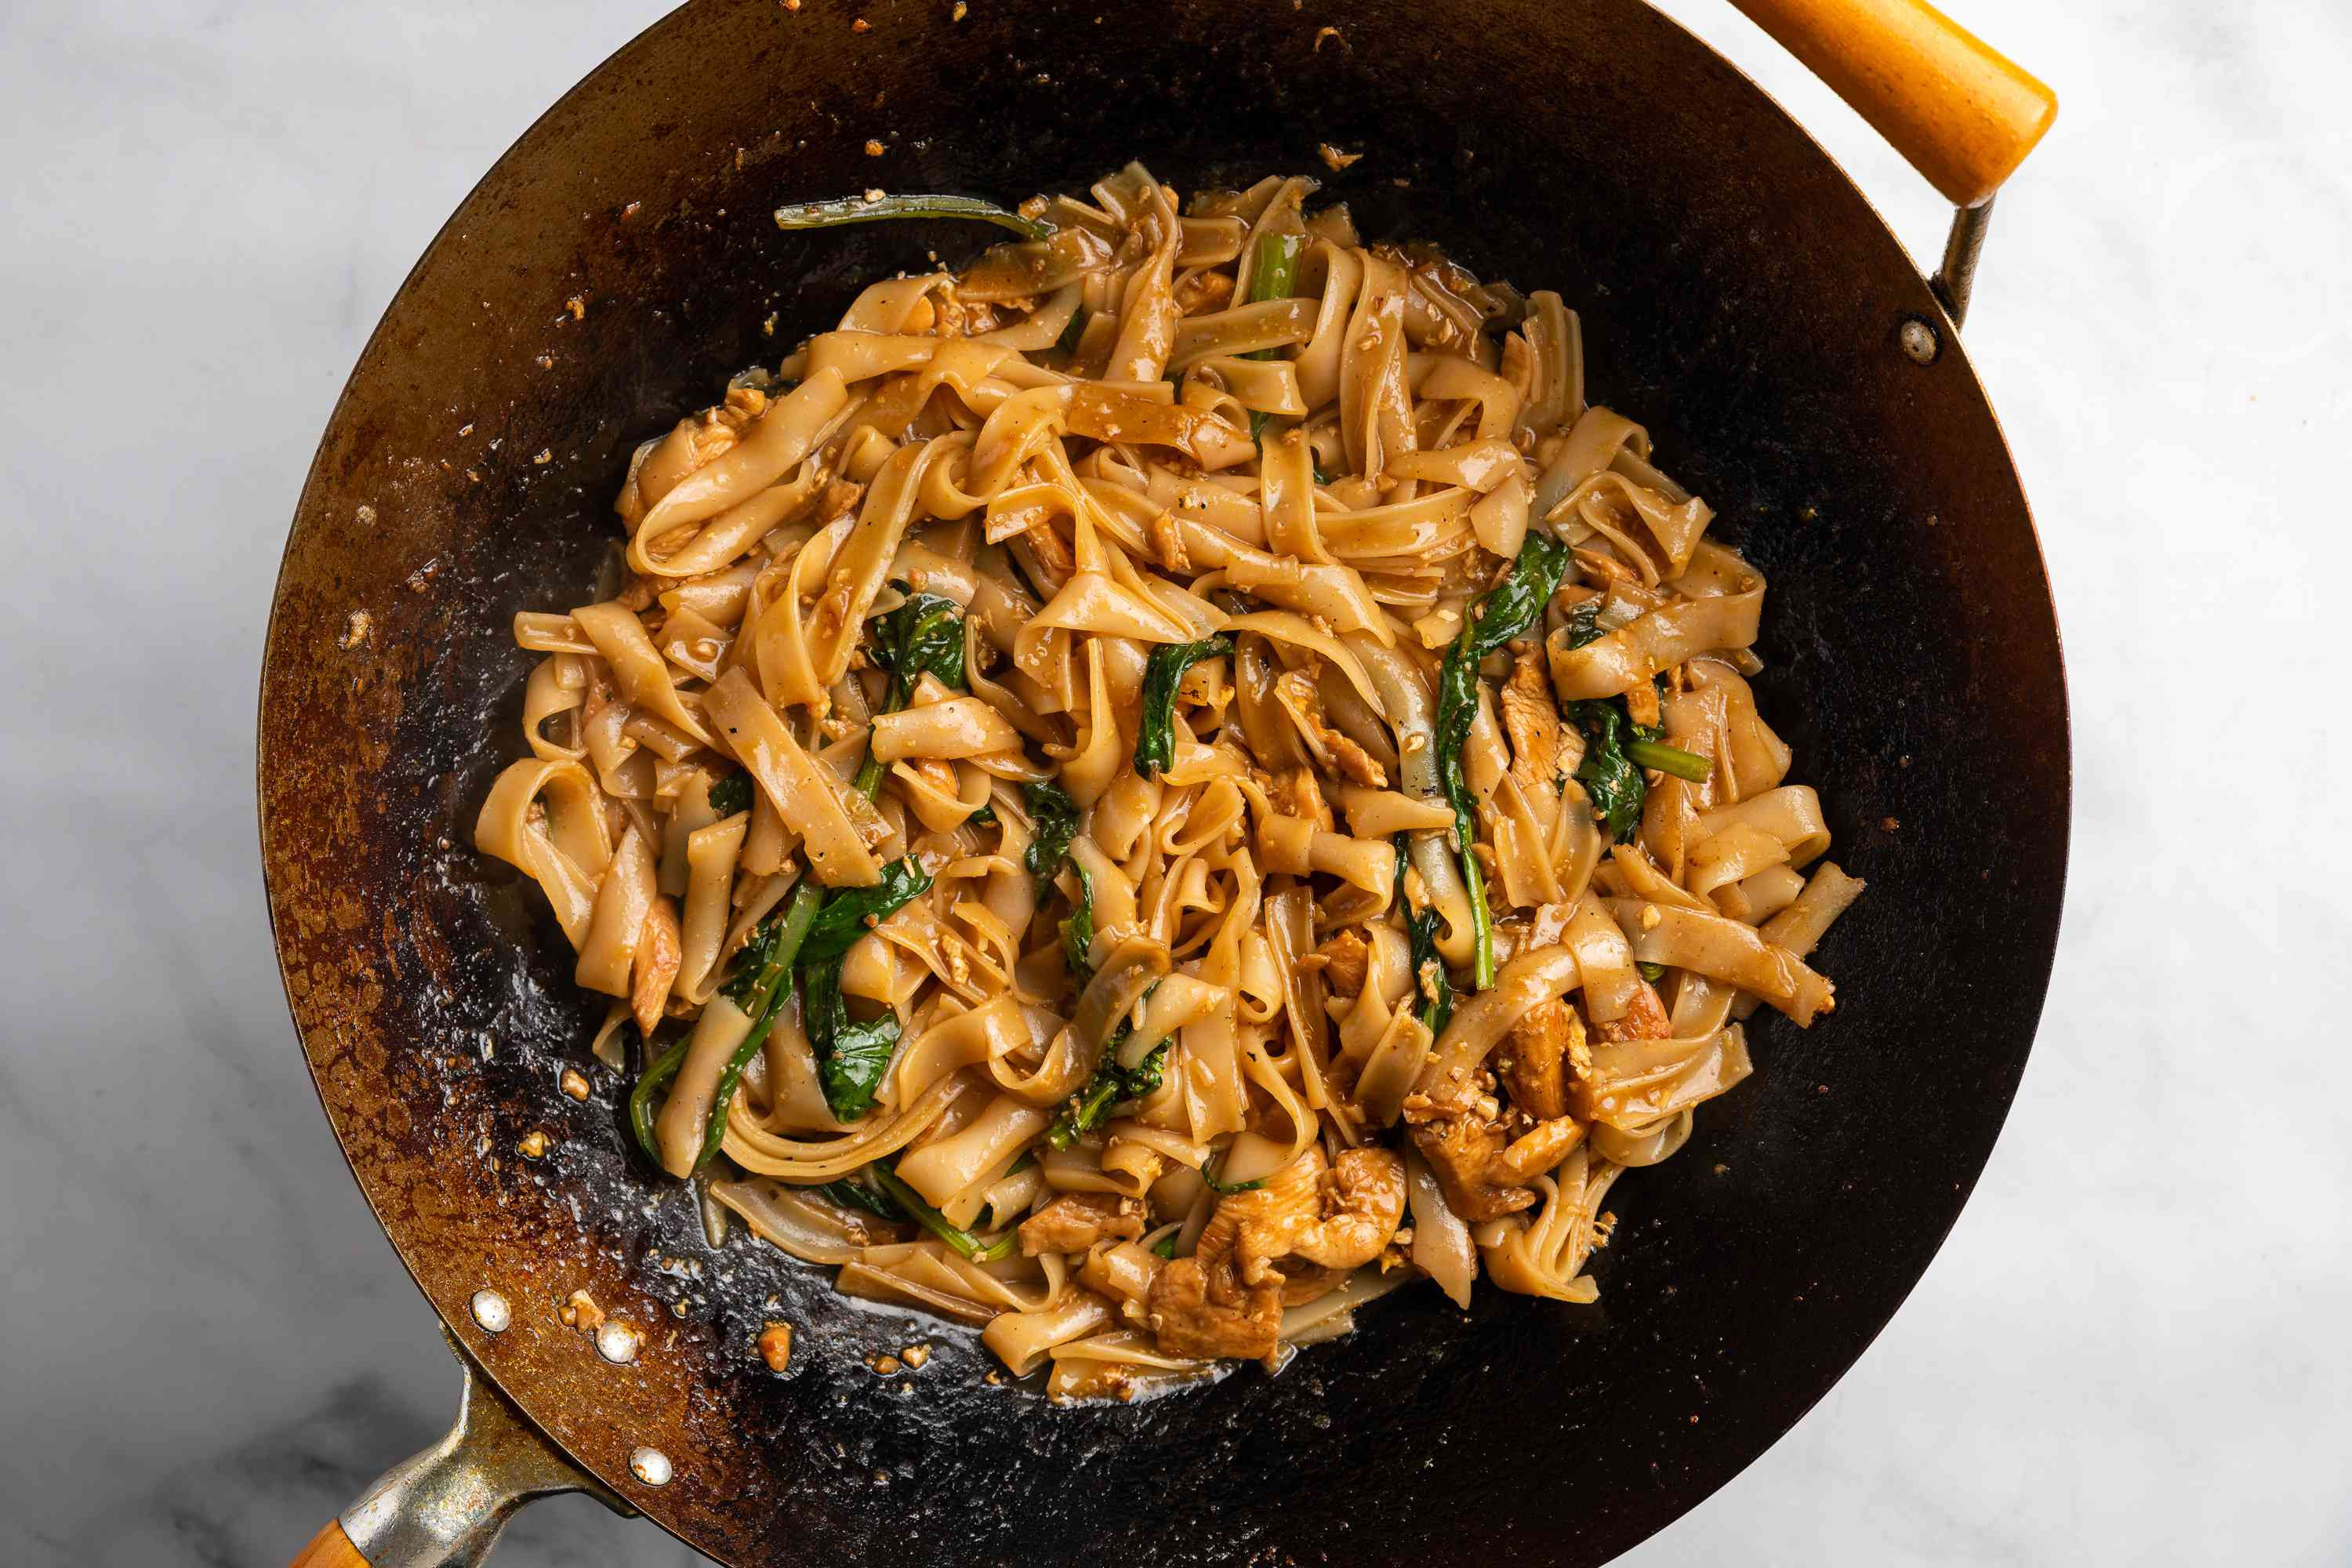 Stir fry ingredients together with noodles for chicken pad see ew